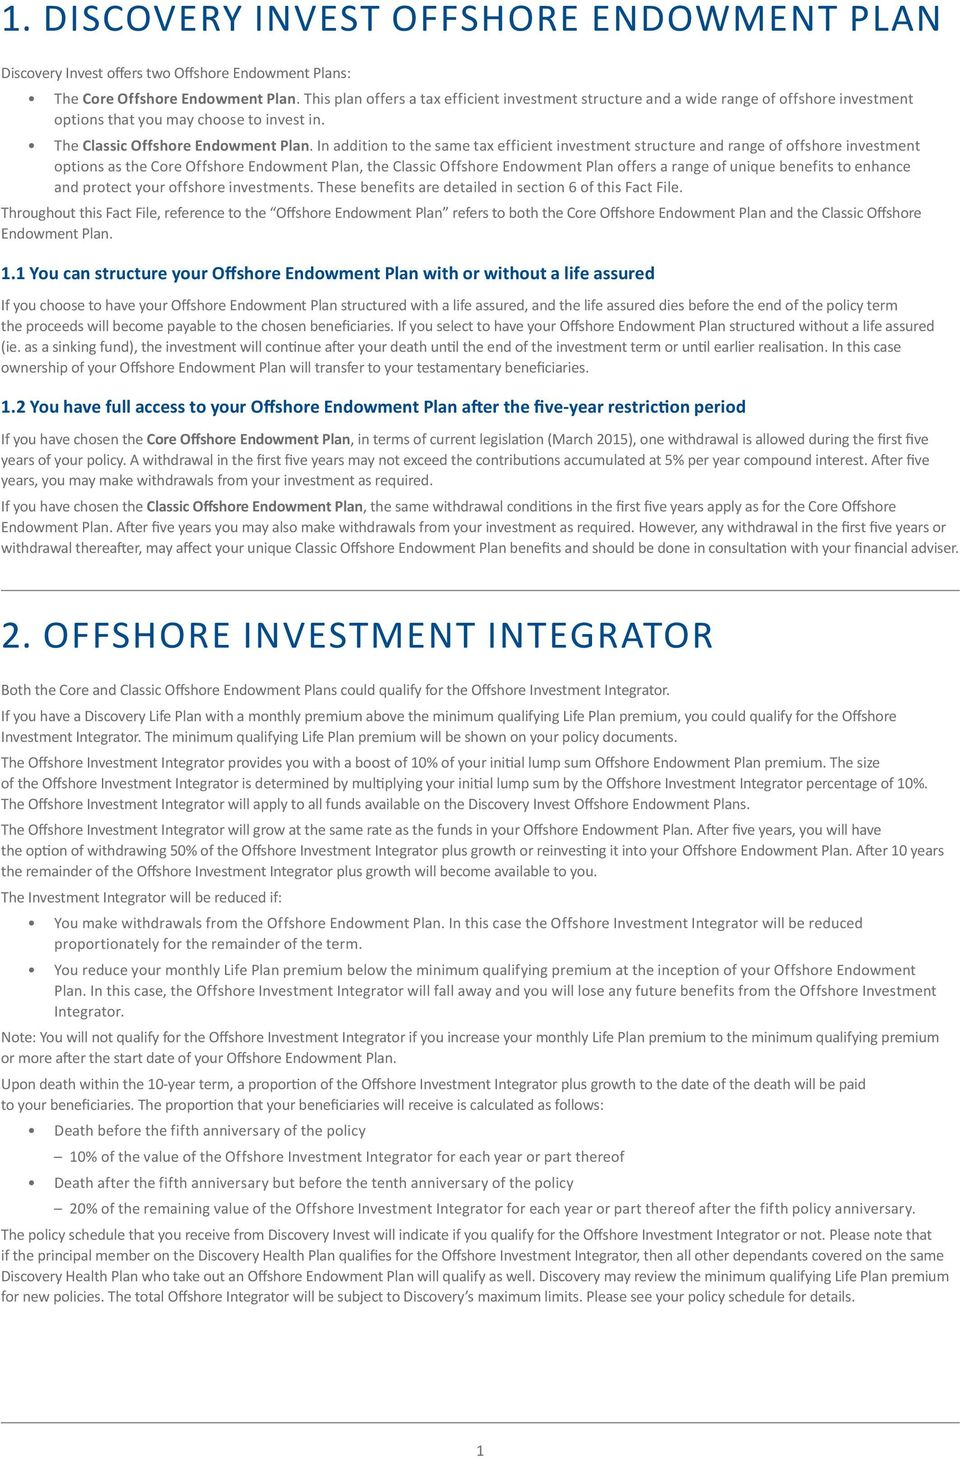 In addition to the same tax efficient investment structure and range of offshore investment options as the Core Offshore Endowment Plan, the Classic Offshore Endowment Plan offers a range of unique